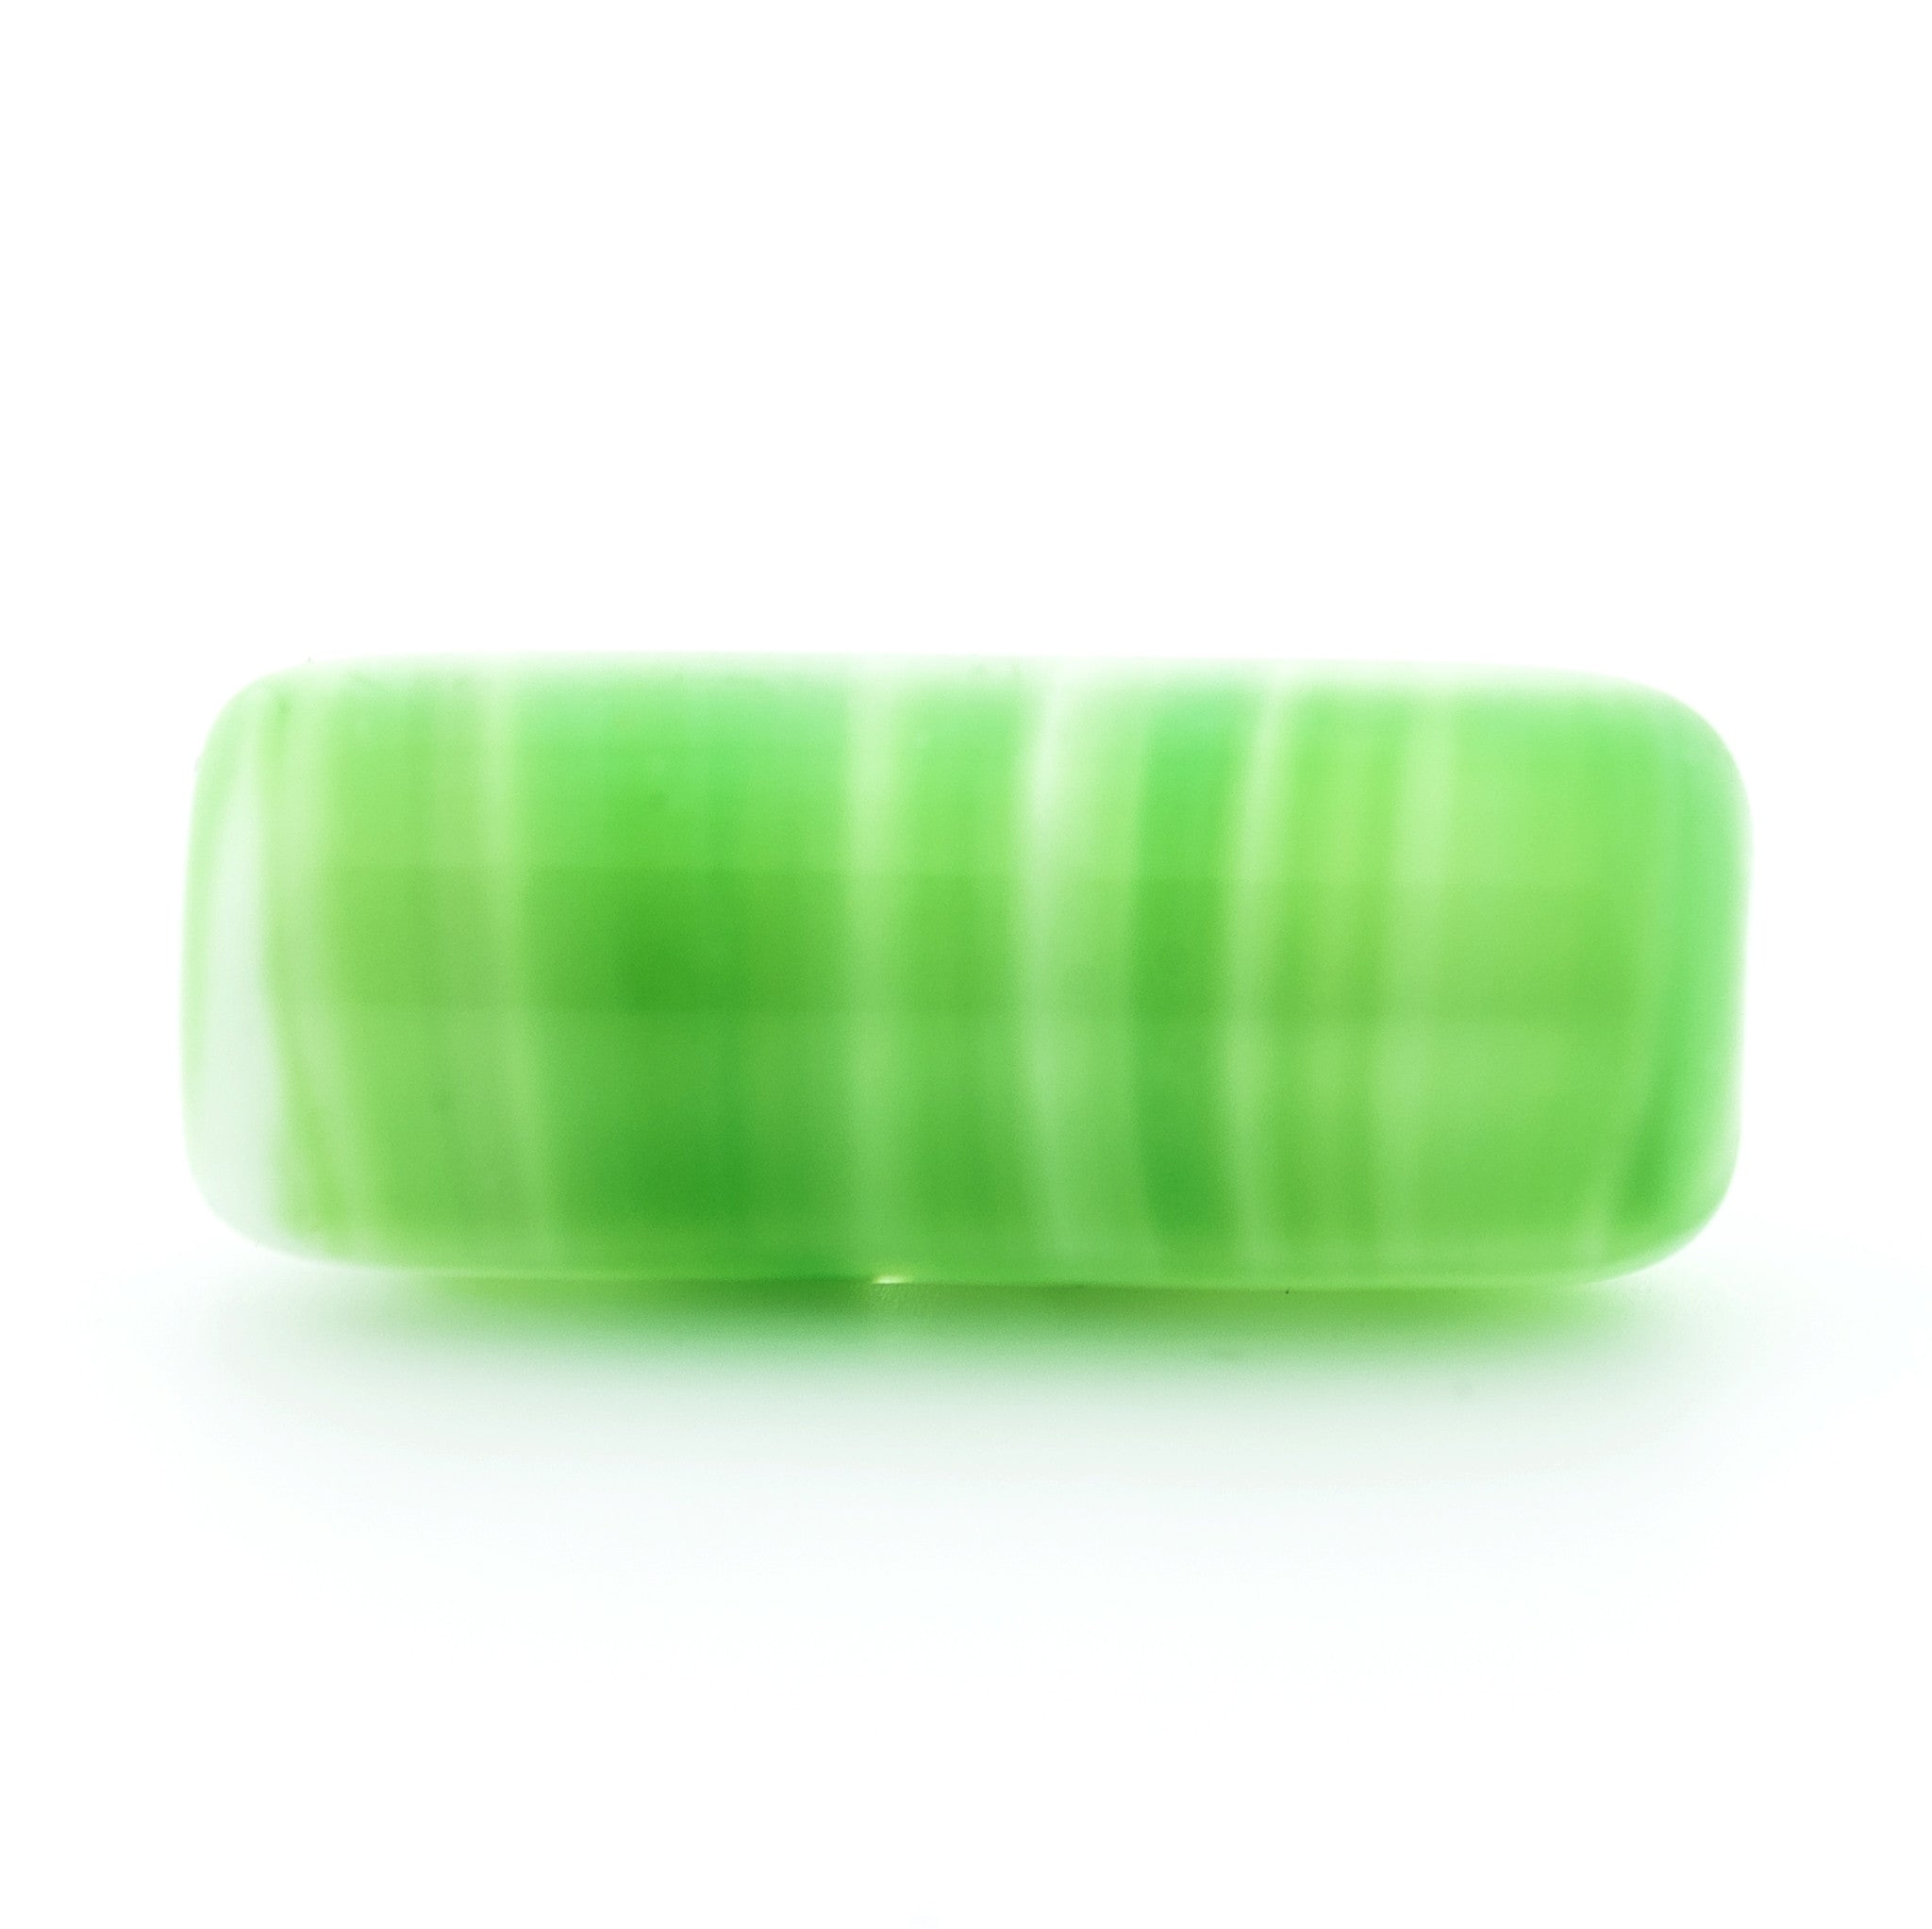 15X6MM Green Glass Tube Bead (72 pieces)